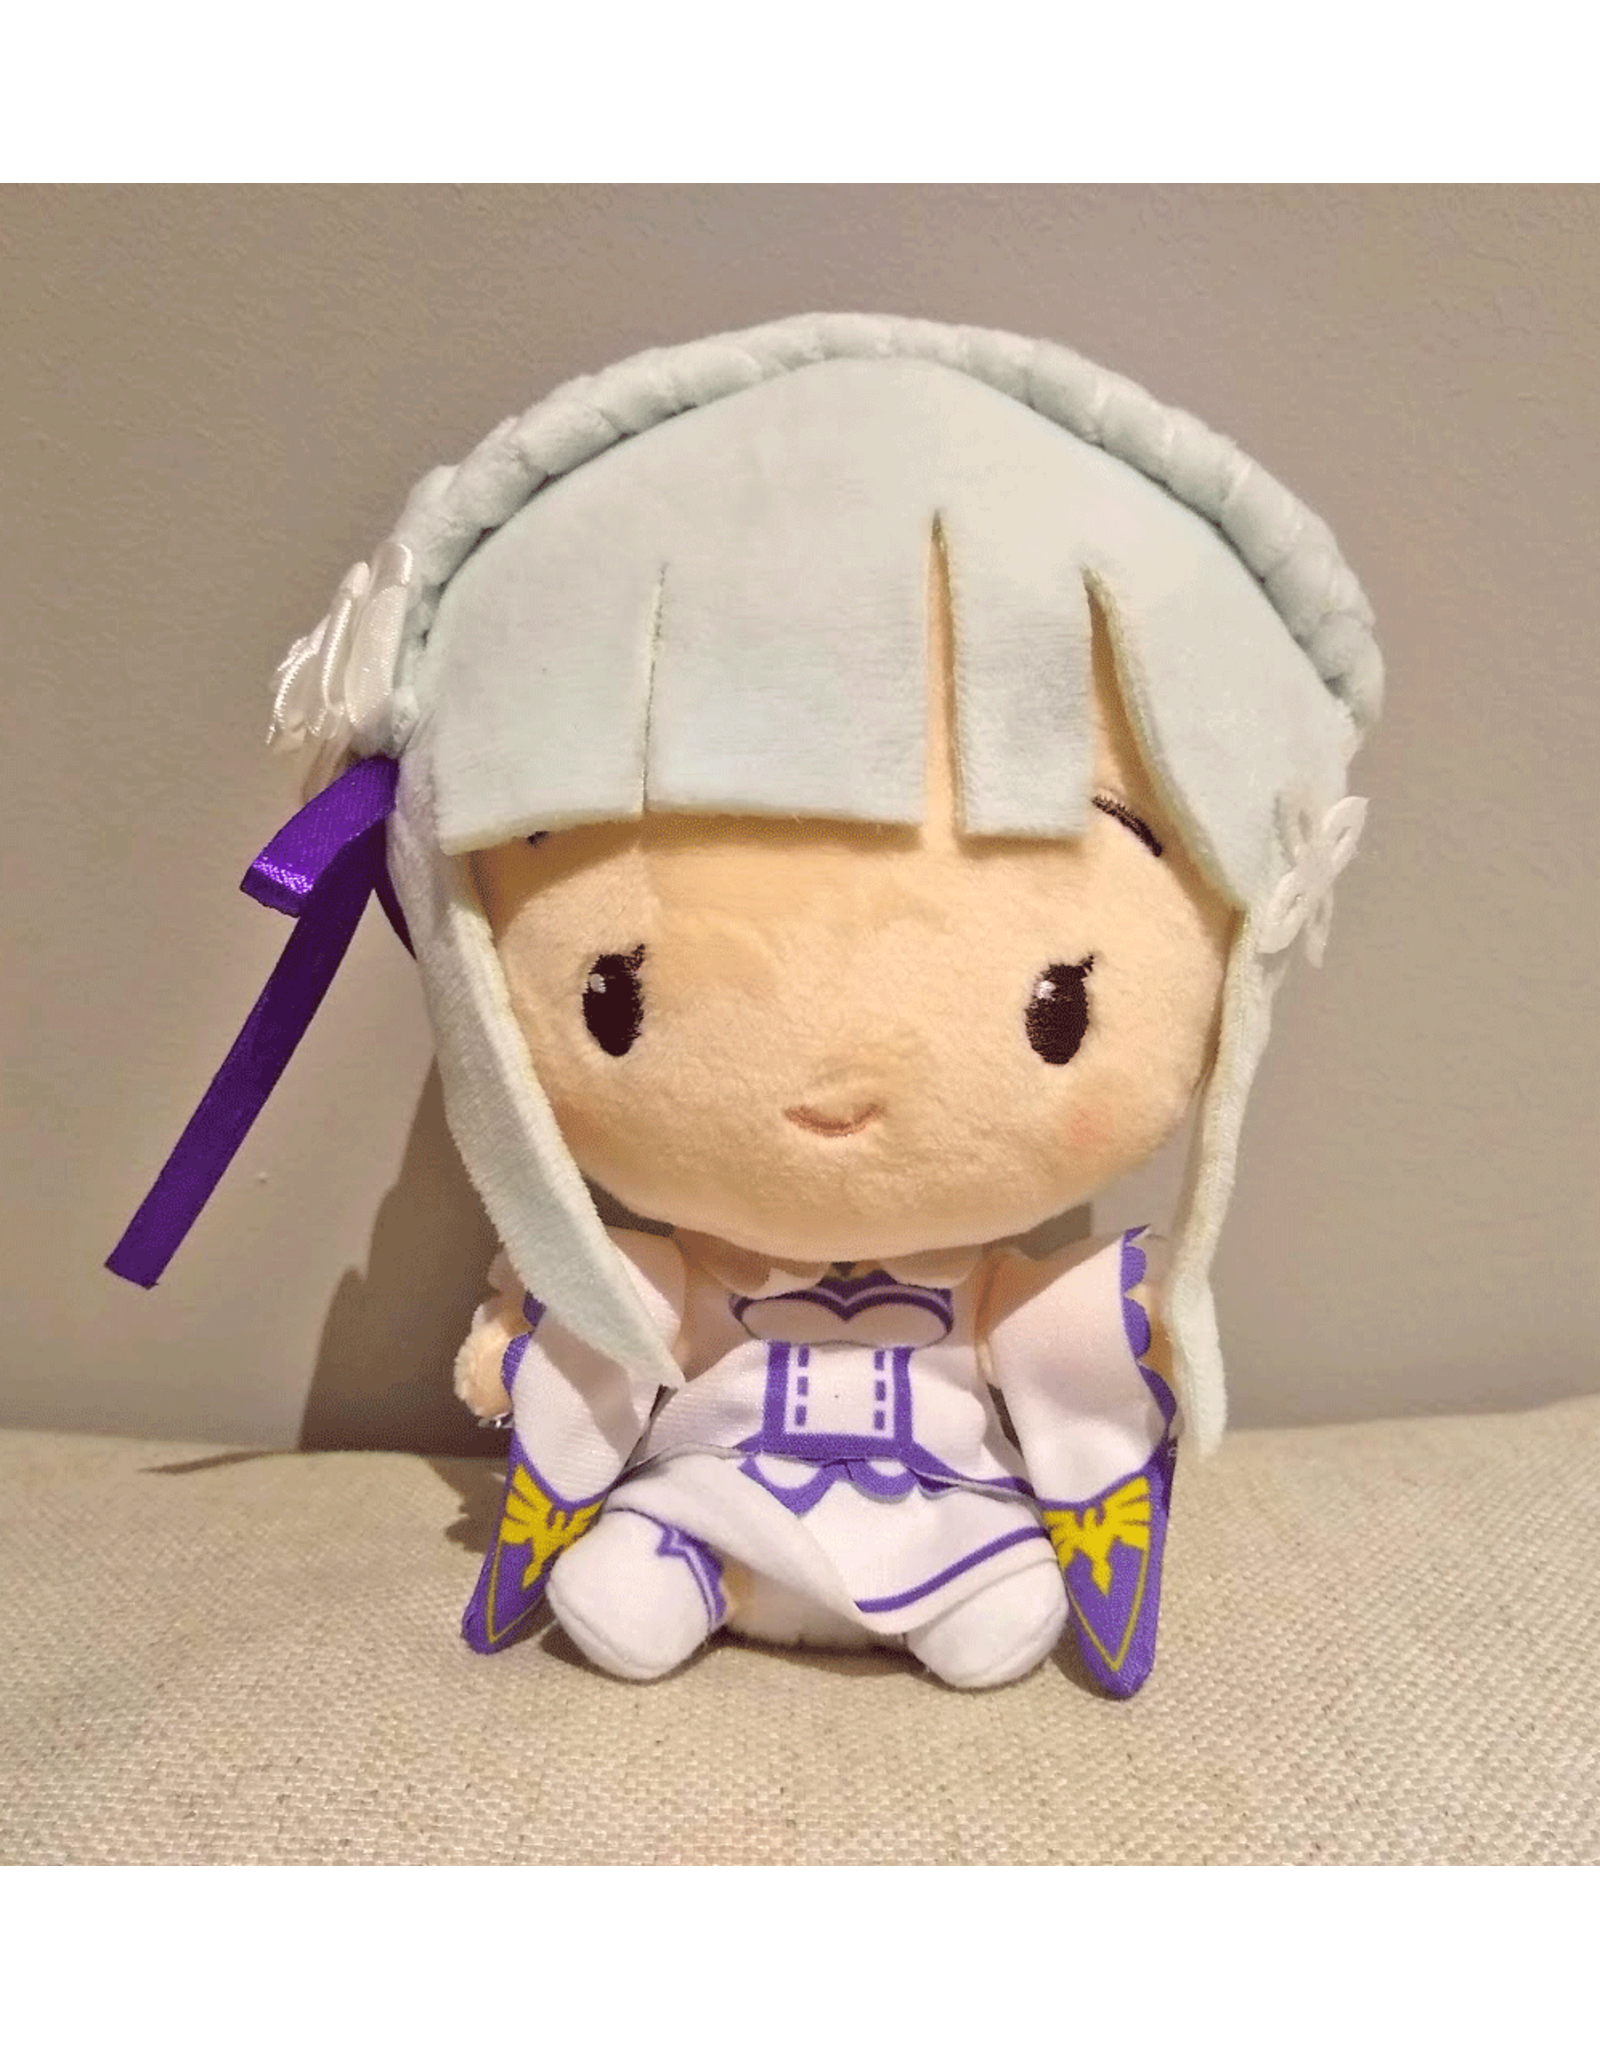 Re:Zero Cute plush - Emilia - 15cm